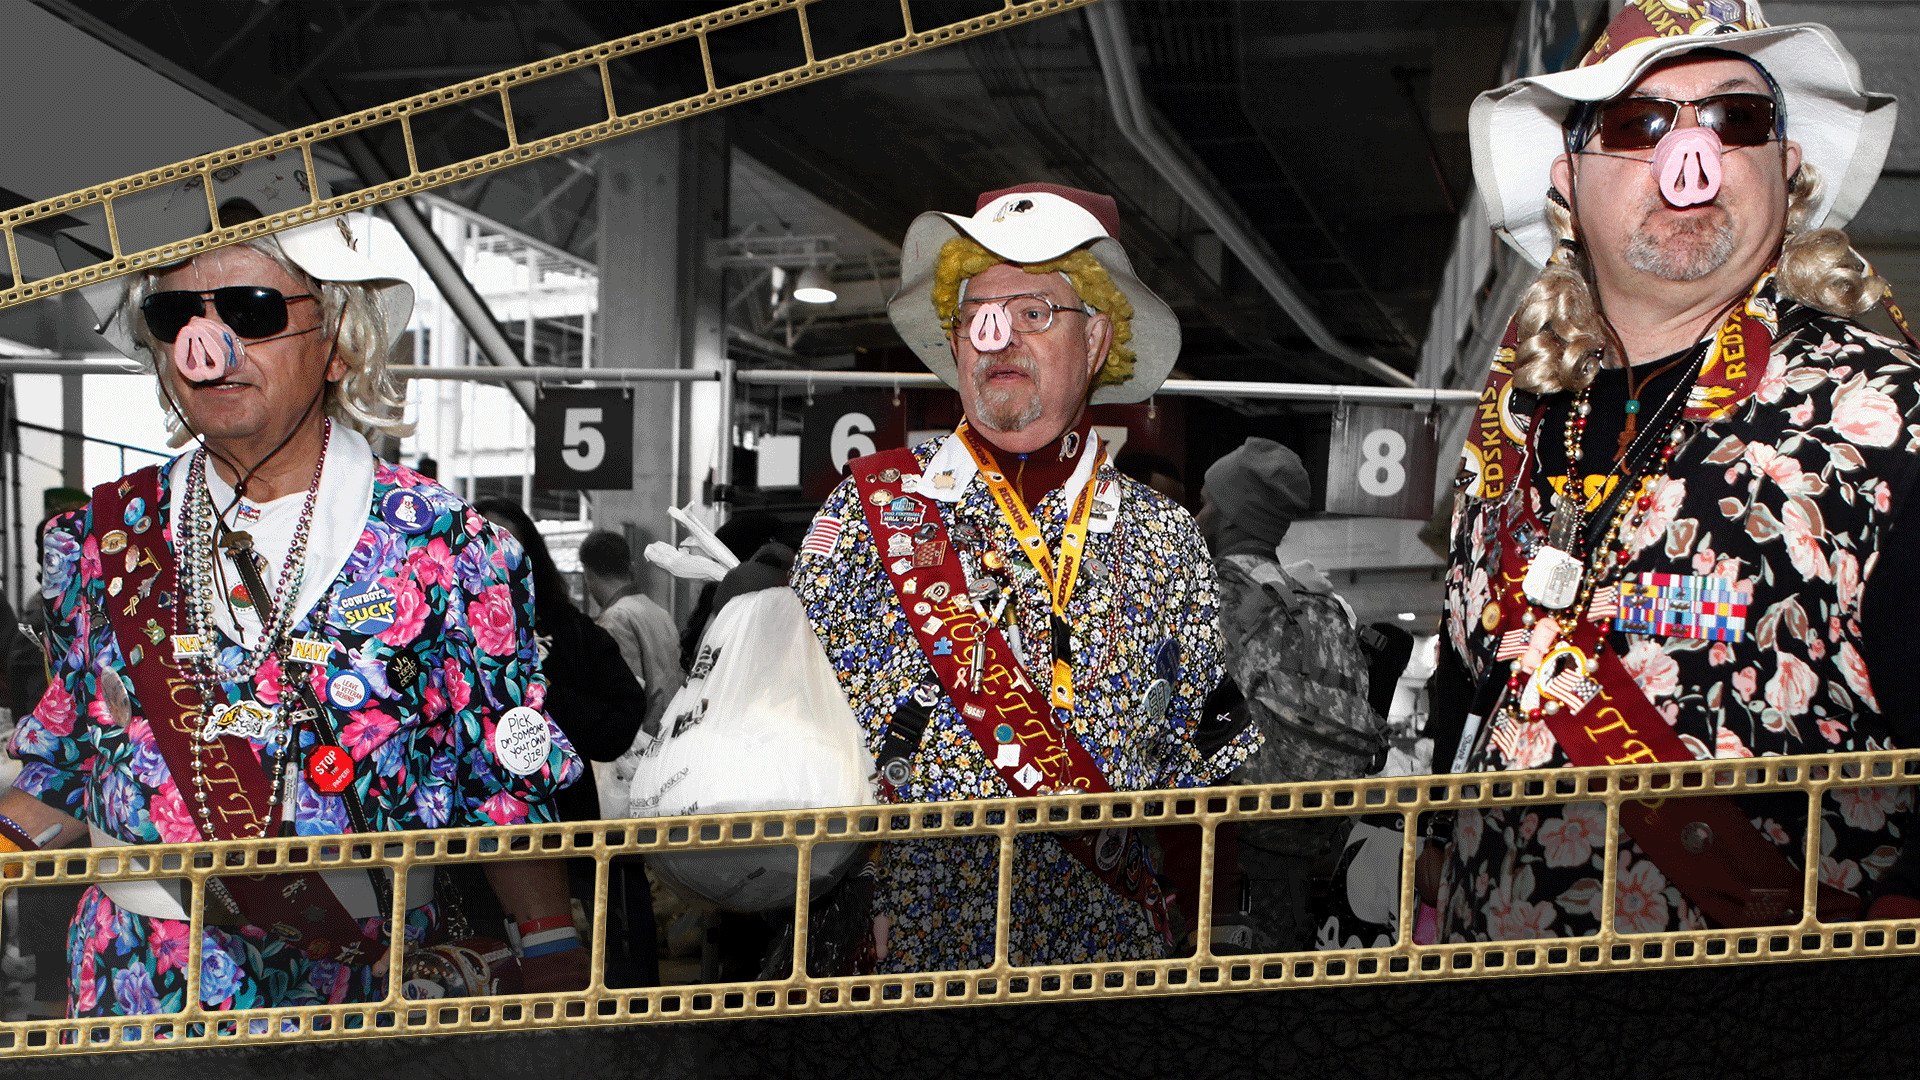 Three members of the Hogettes, fans of the Washington Football Team, with gold film camera roll clipart on the top left and the bottom